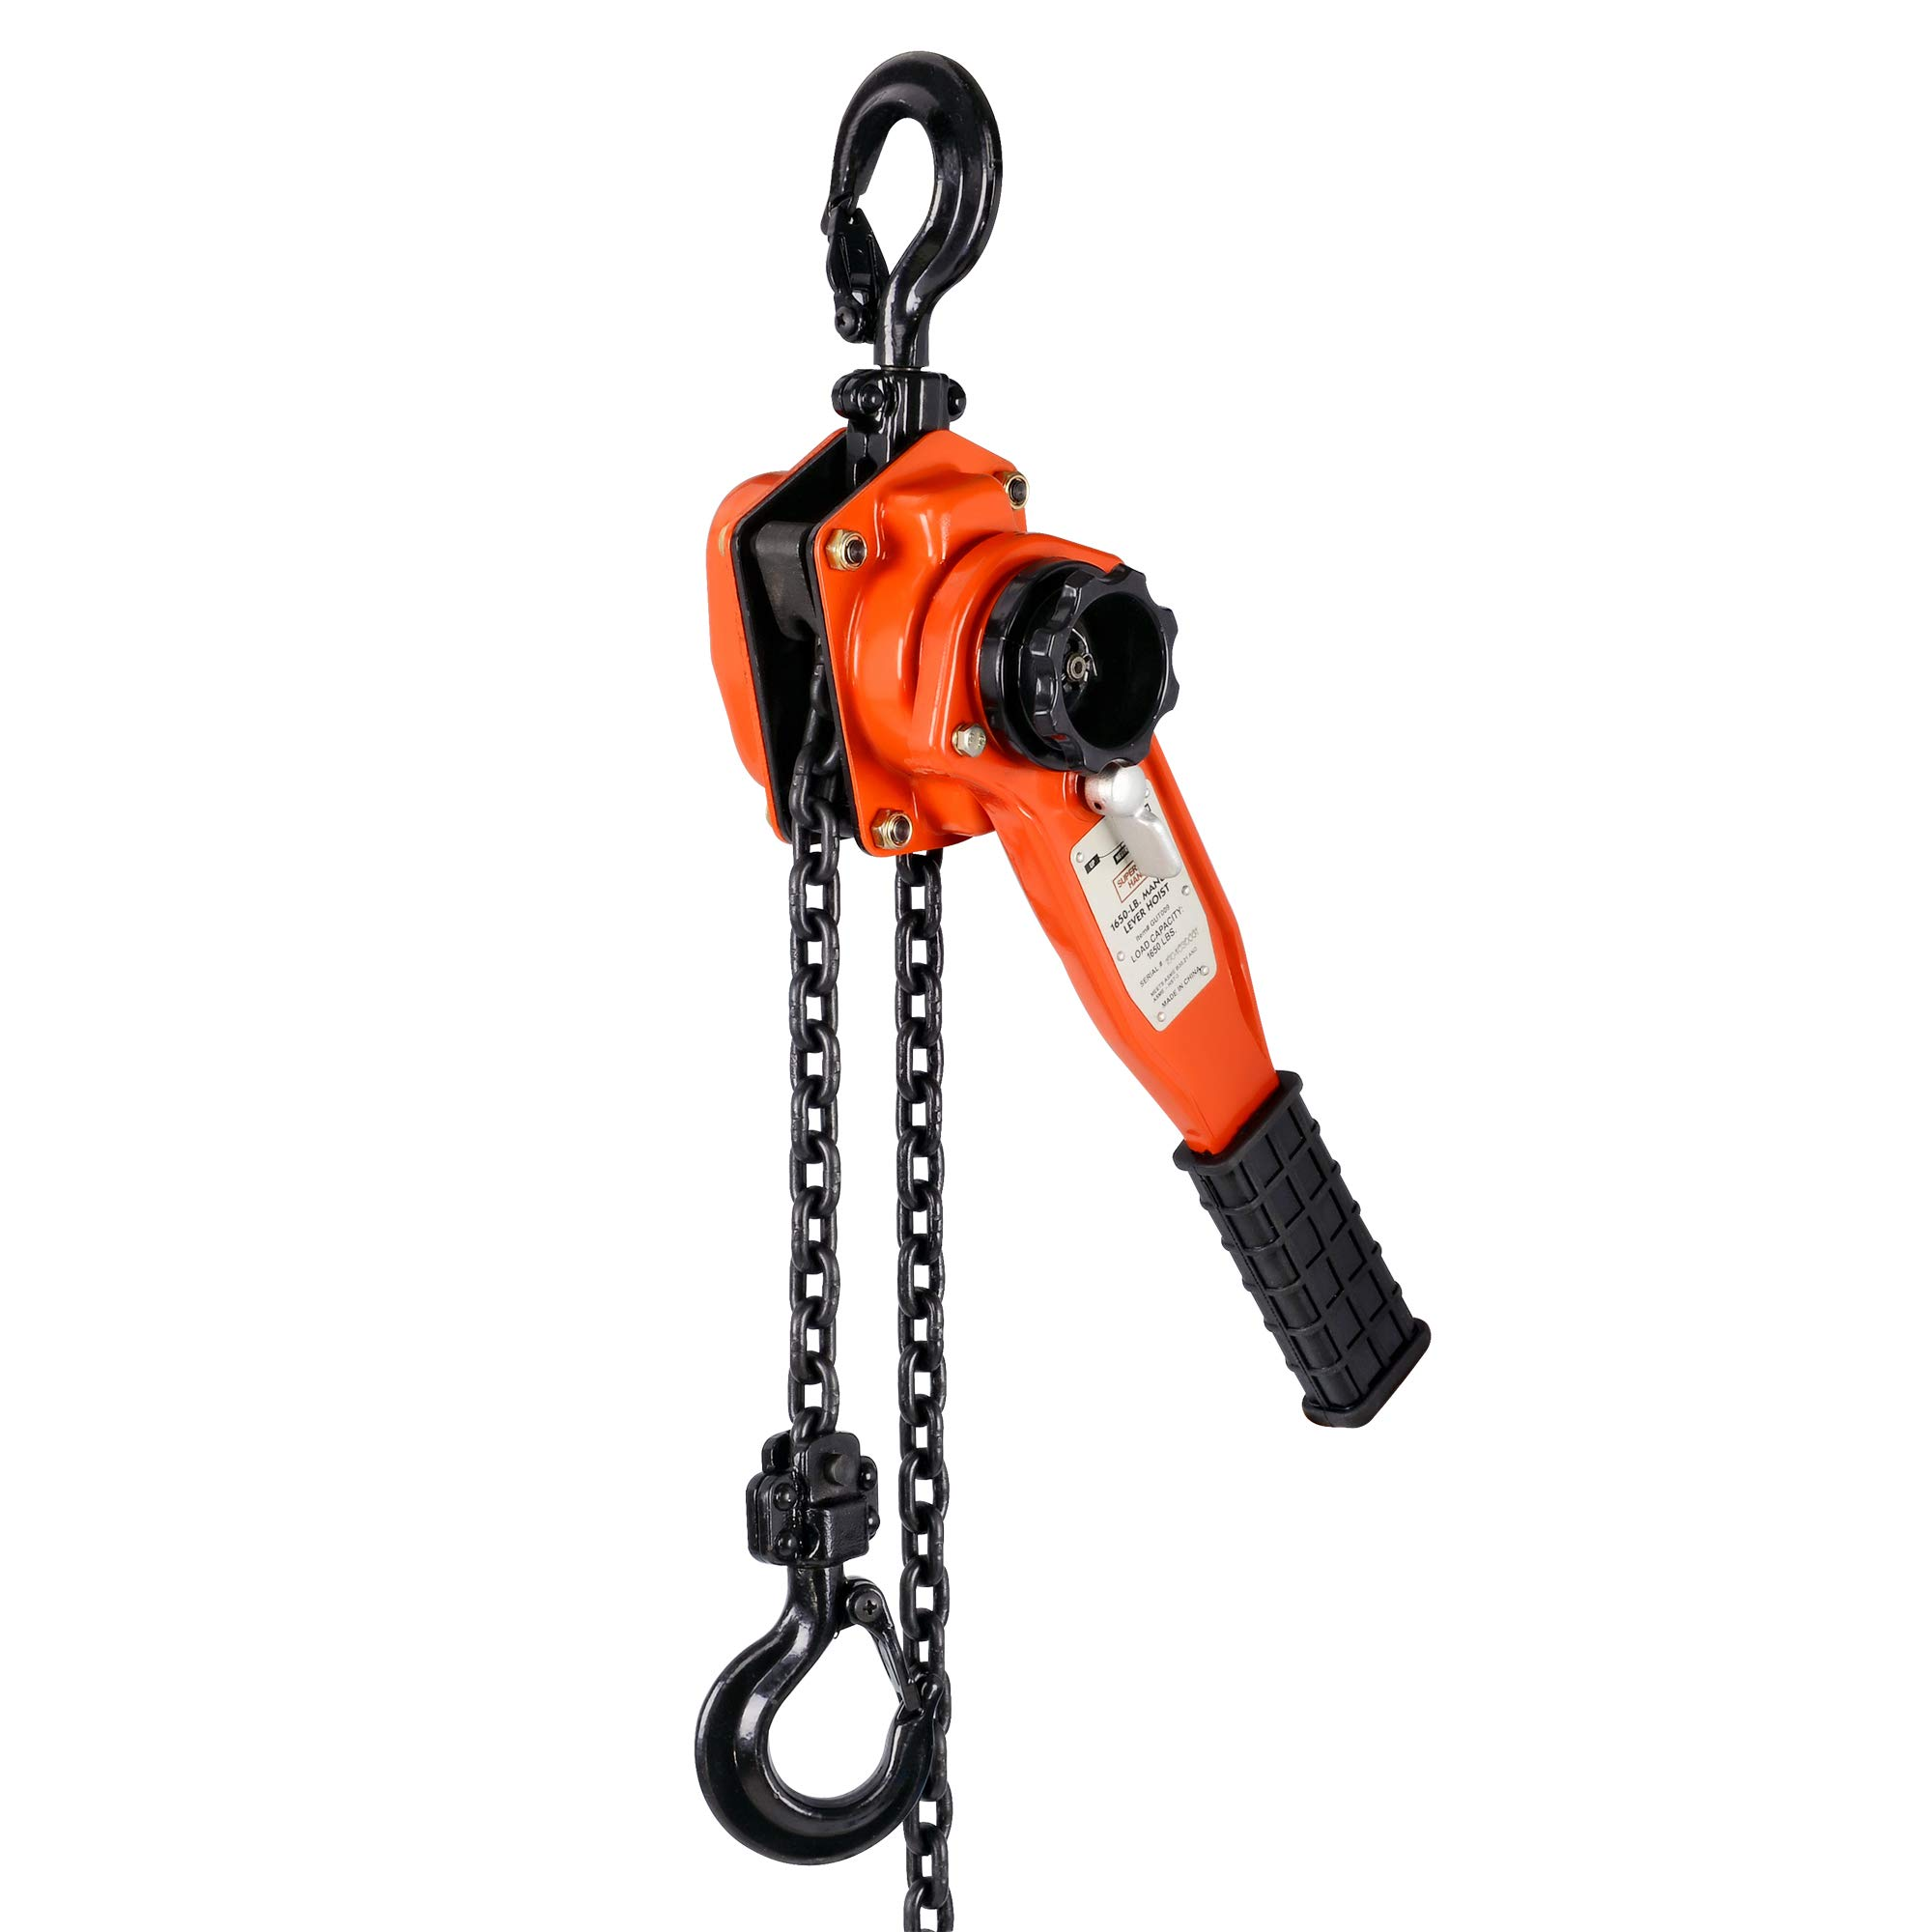 SuperHandy Manual Lever Hoist Come Along 3/4 TON 1650 LBS Capacity 5FT Lift 2 Heavy Duty Hooks Commercial Grade Steel for Lifting Pulling Construction Building Garages Warehouse Automotive Machinery